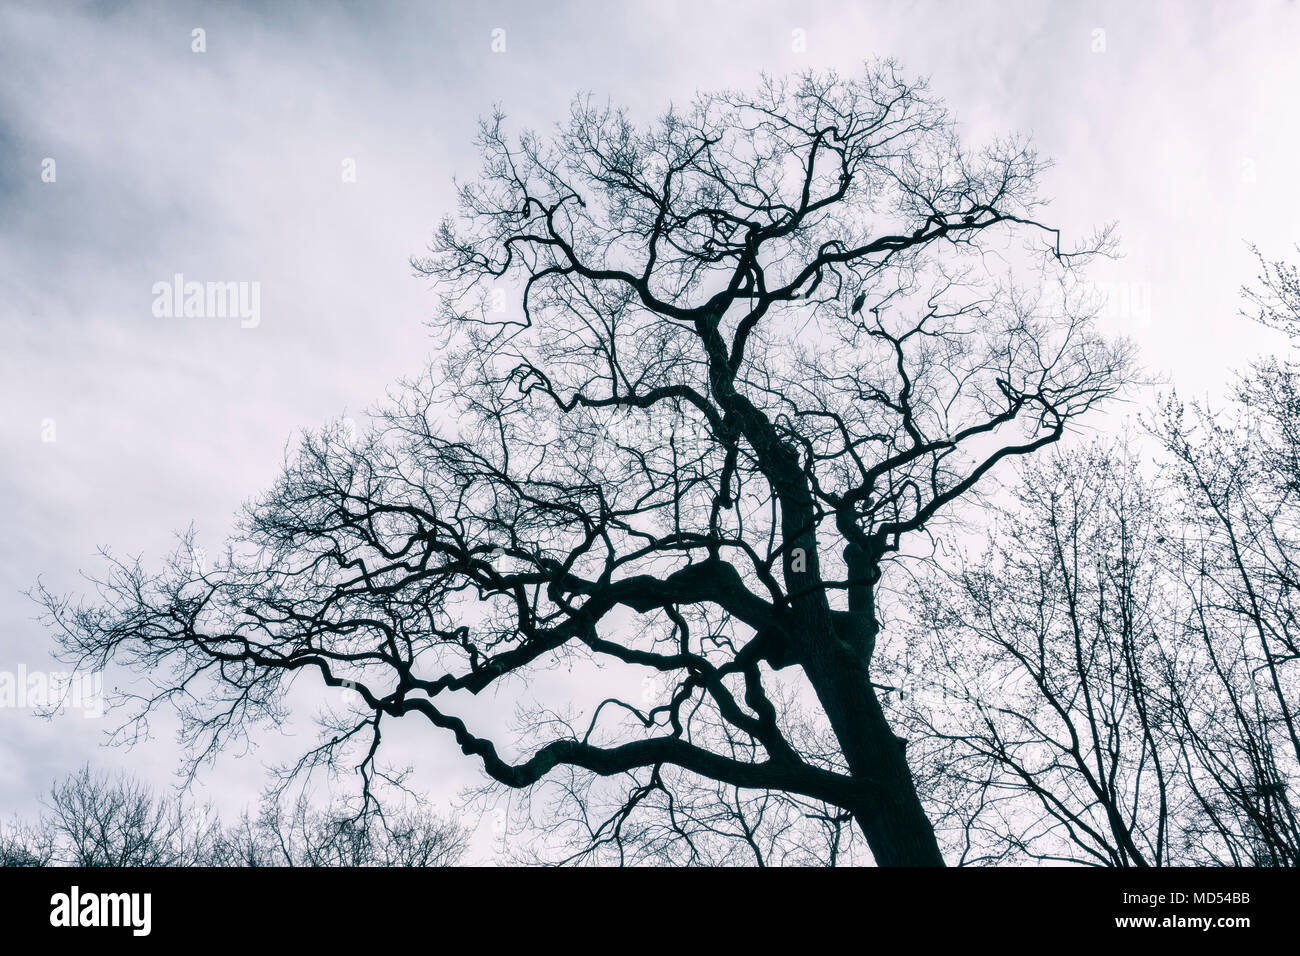 Bare trees in winter - Stock Image